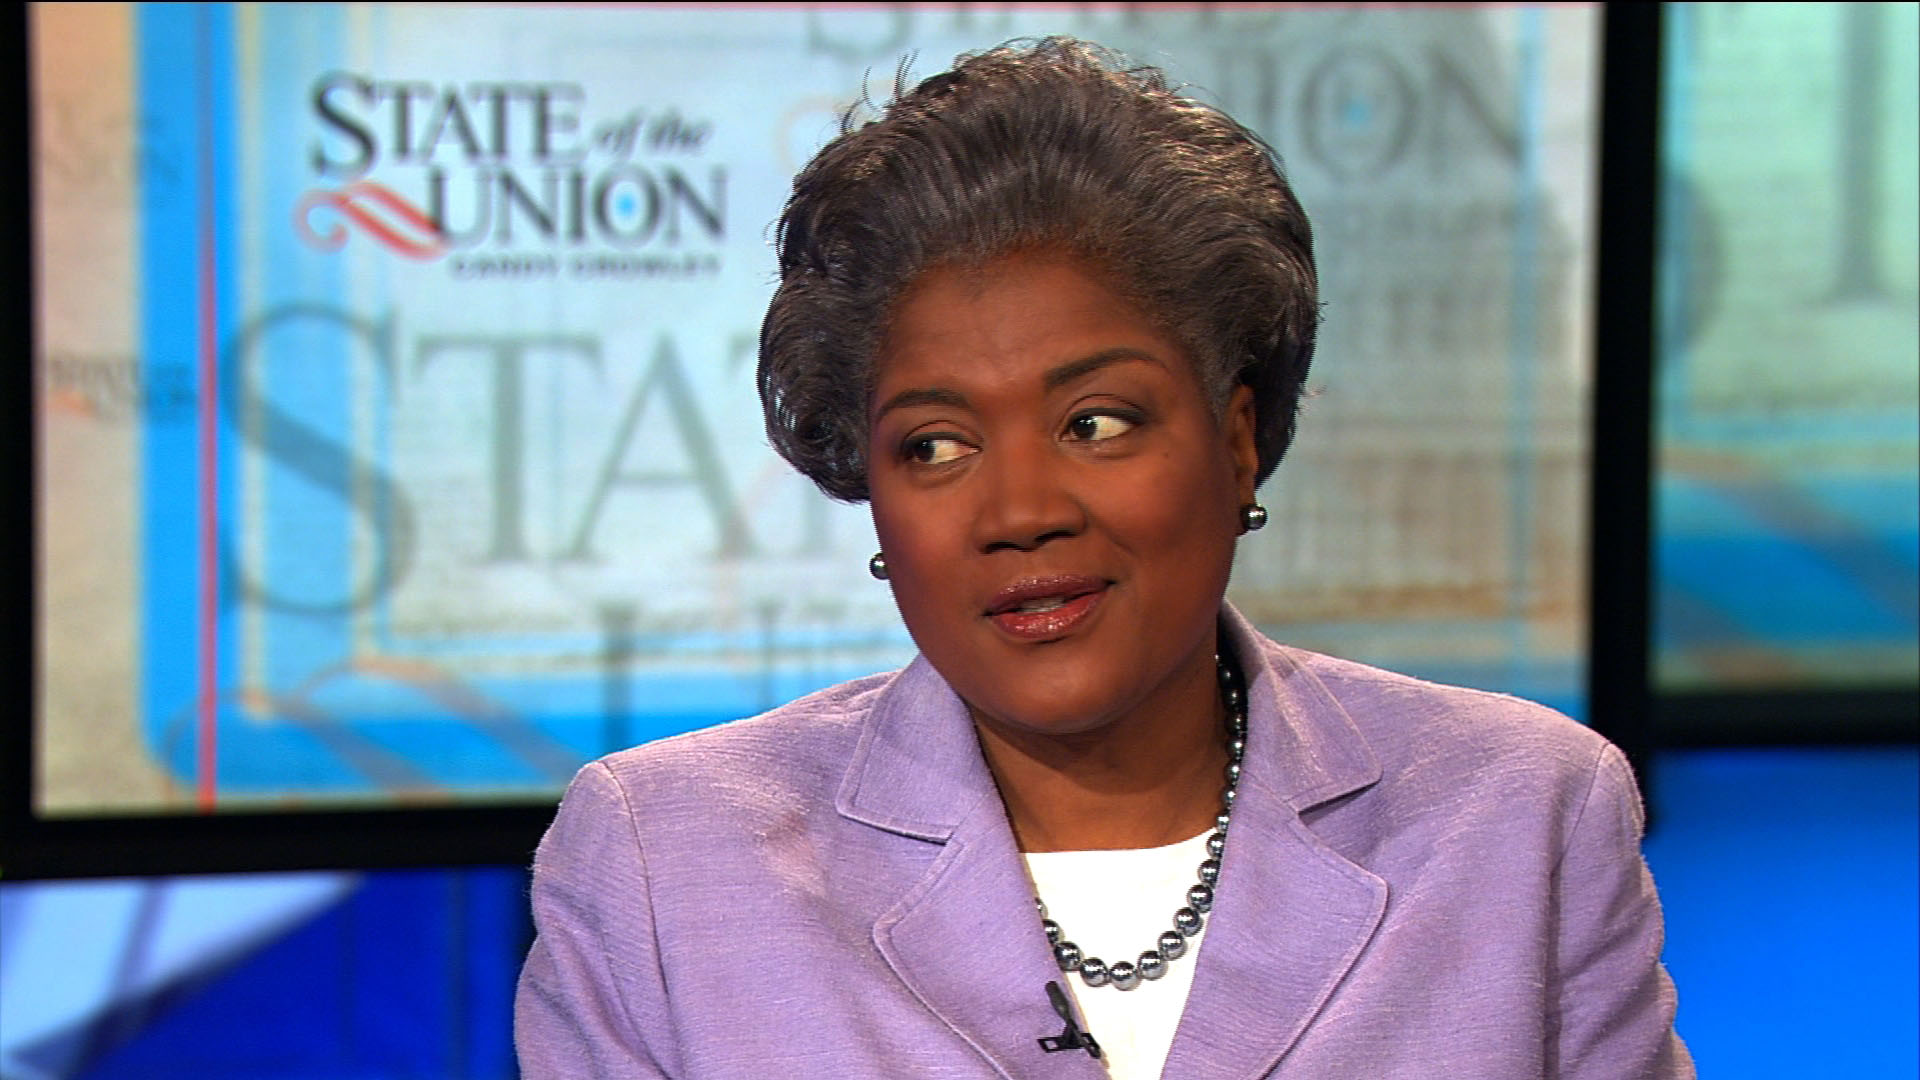 Brazile to temporarily lead Democratic National Committee